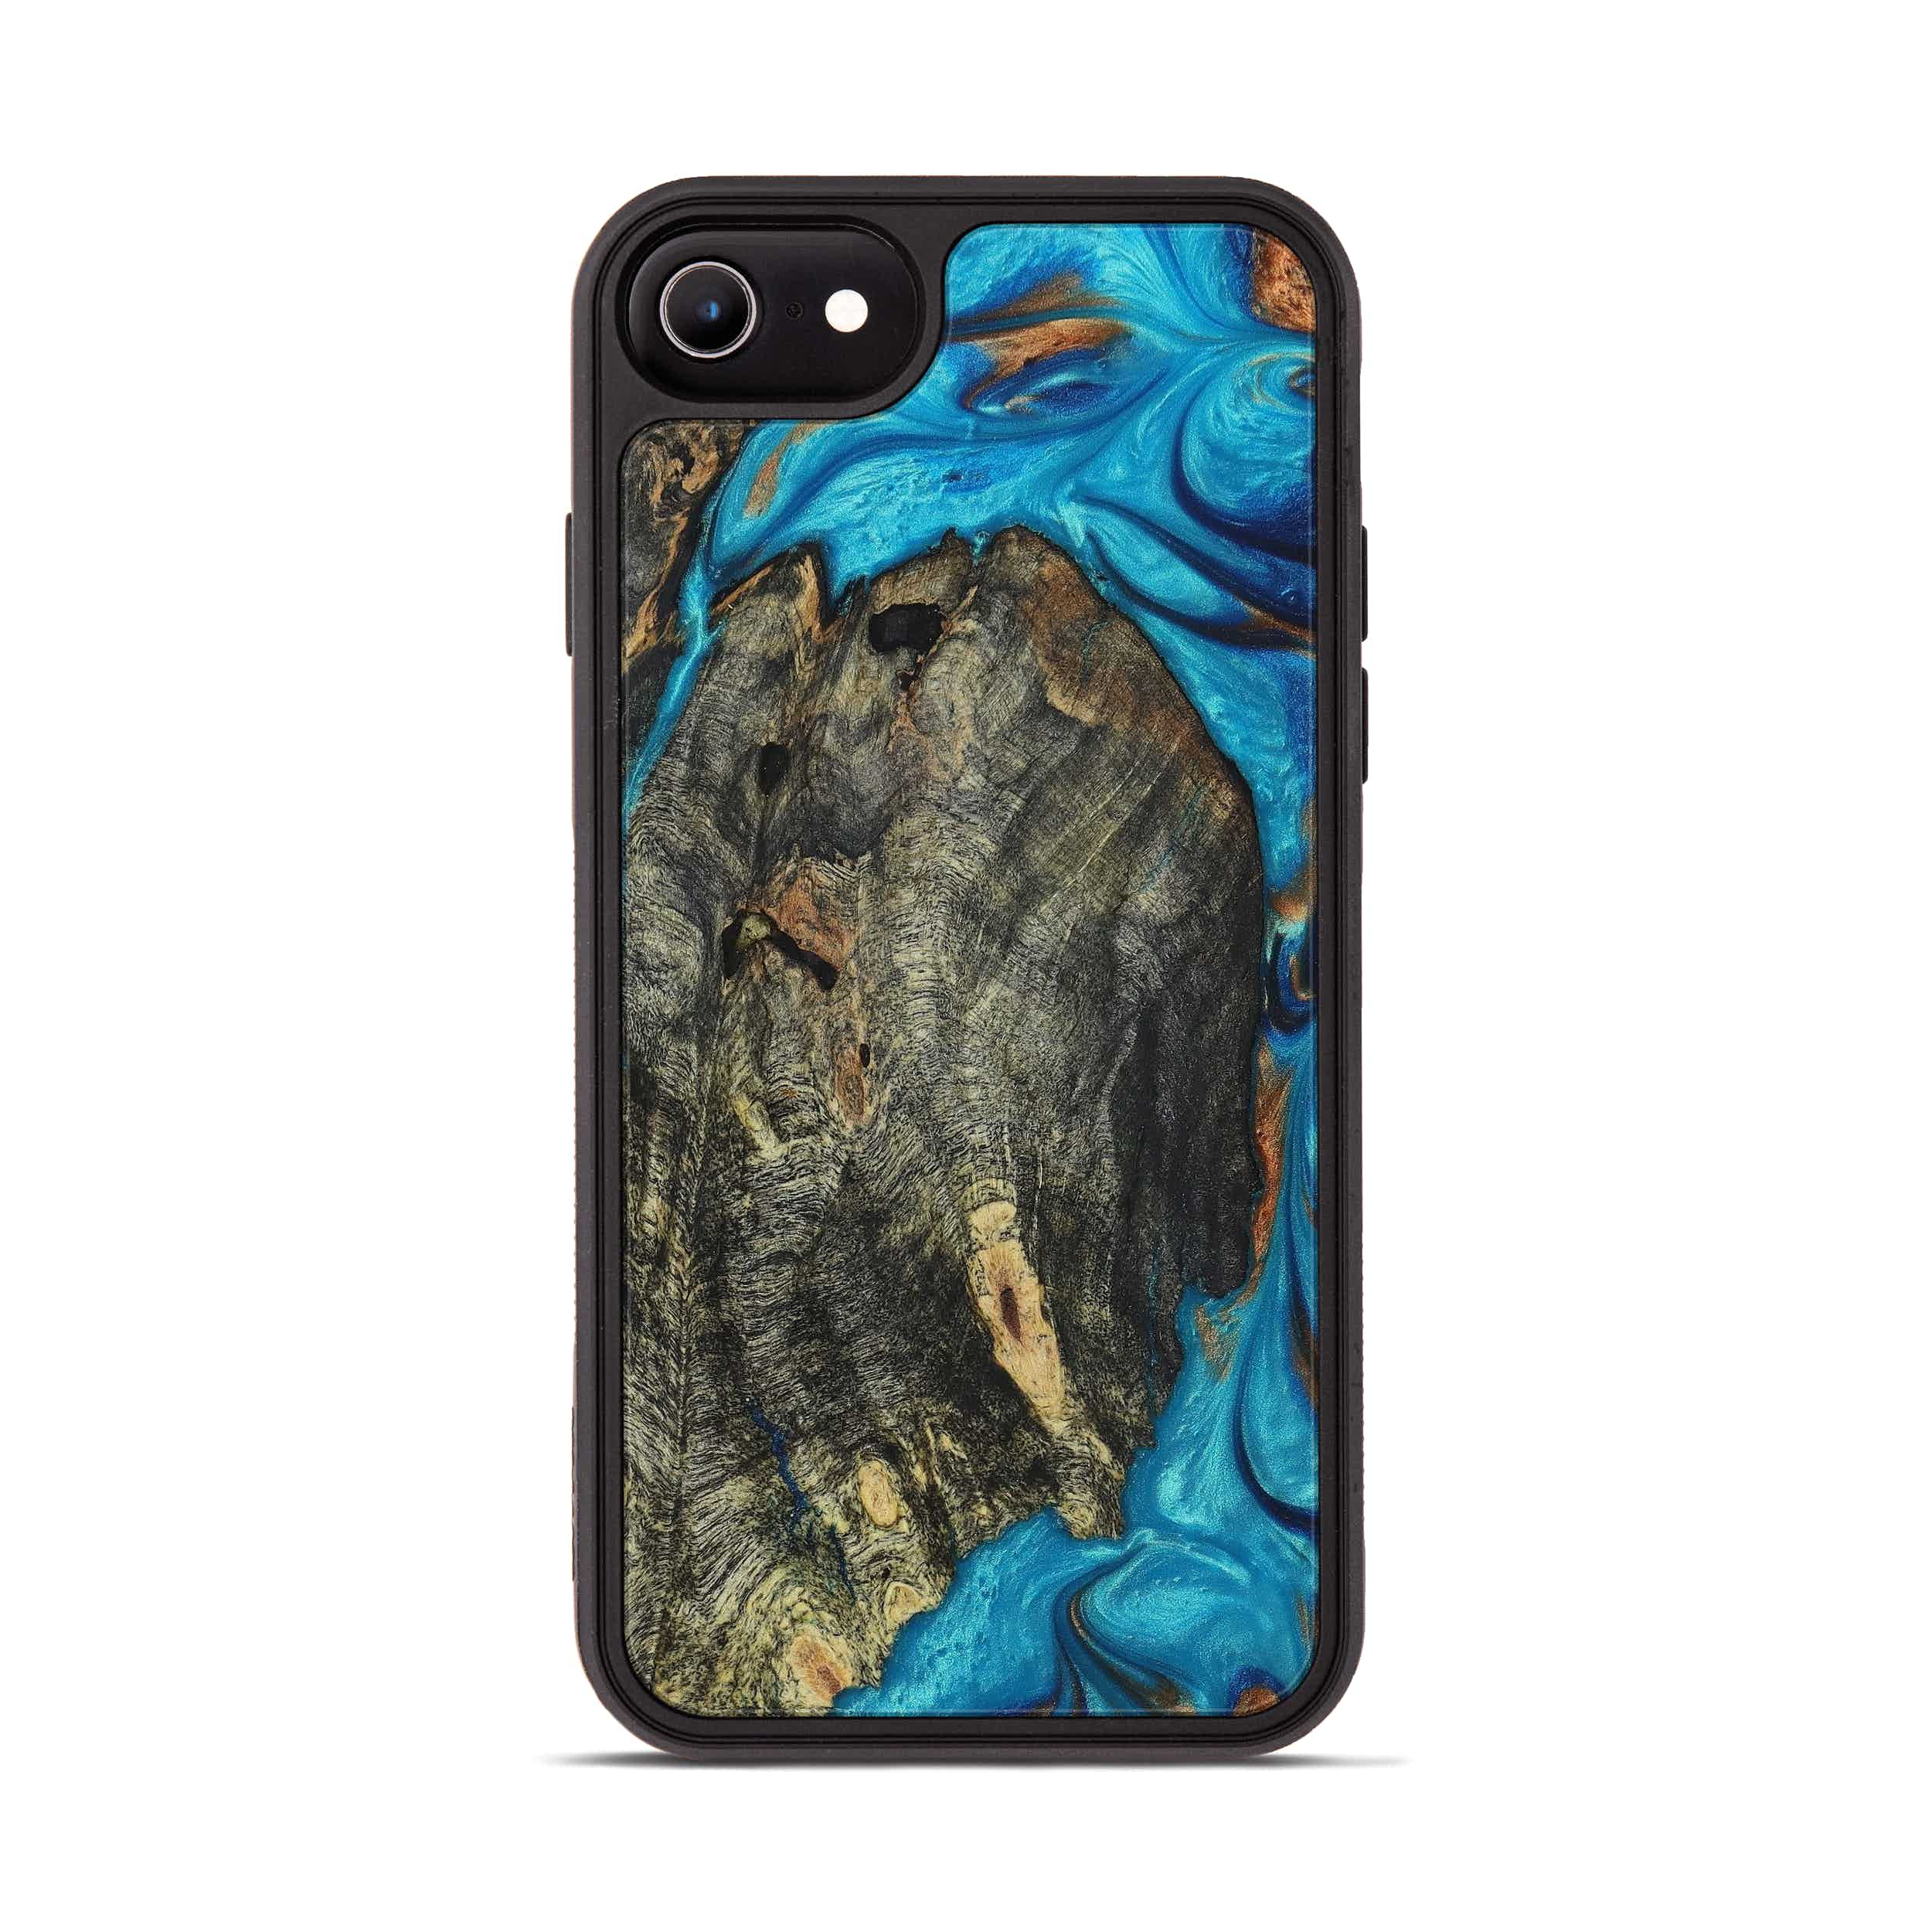 iPhone 6s Wood+Resin Phone Case - Lonnie (Teal & Gold, 394534)